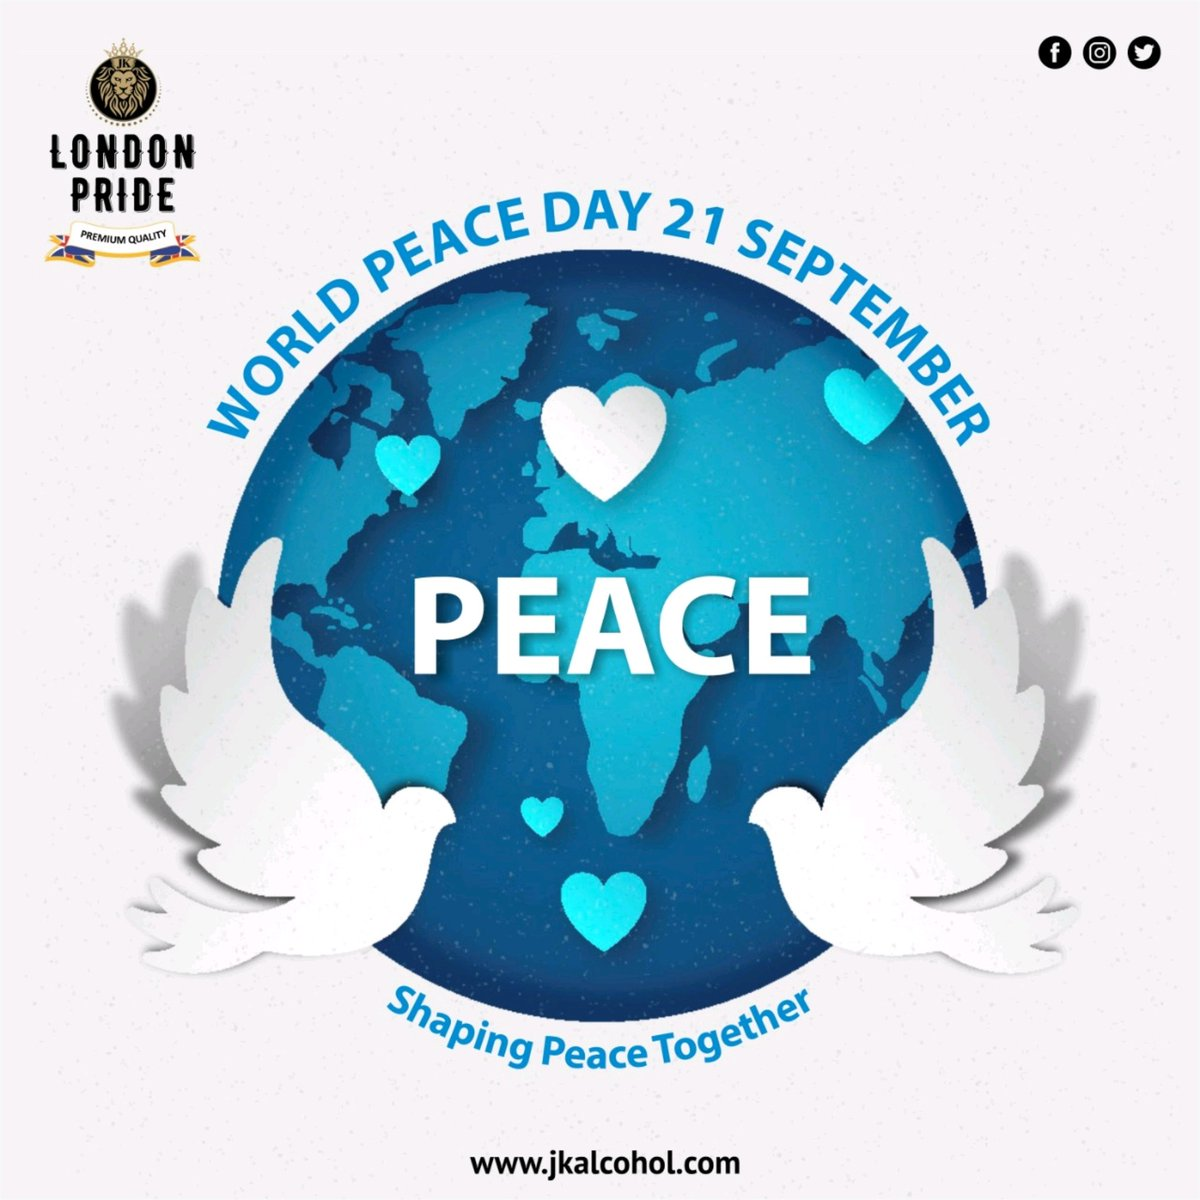 On this International Day of Peace, let's do our part in igniting the feeling of calmness, tranquility, and sanctity amongst people even in the tough times of today. . #InternationalPeaceDay #internationaldayofpeace #worldpeaceday #jkalcohol #Jkgroup #JkEnterprises #londonpride https://t.co/7rqUgJIUYc